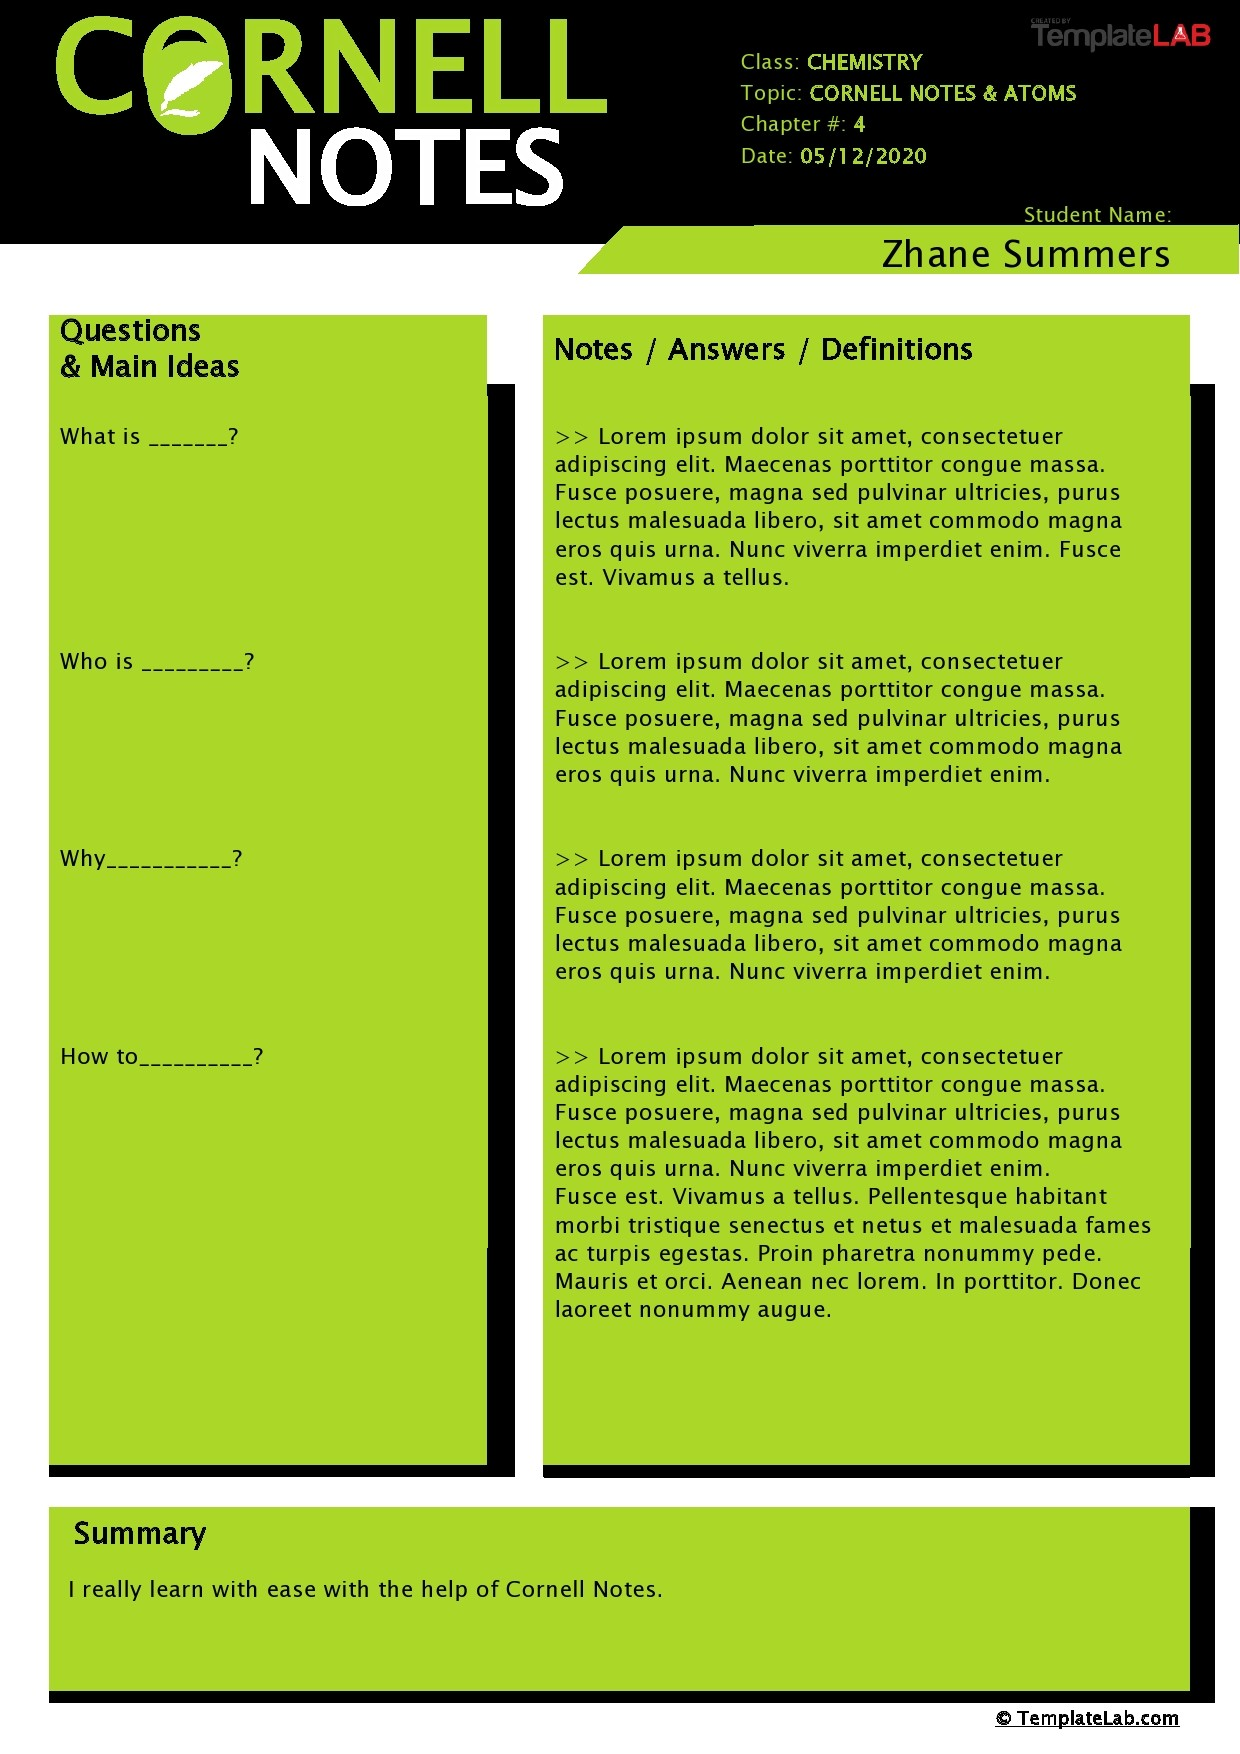 Free Cornell Notes Template 03 - TemplateLab.com